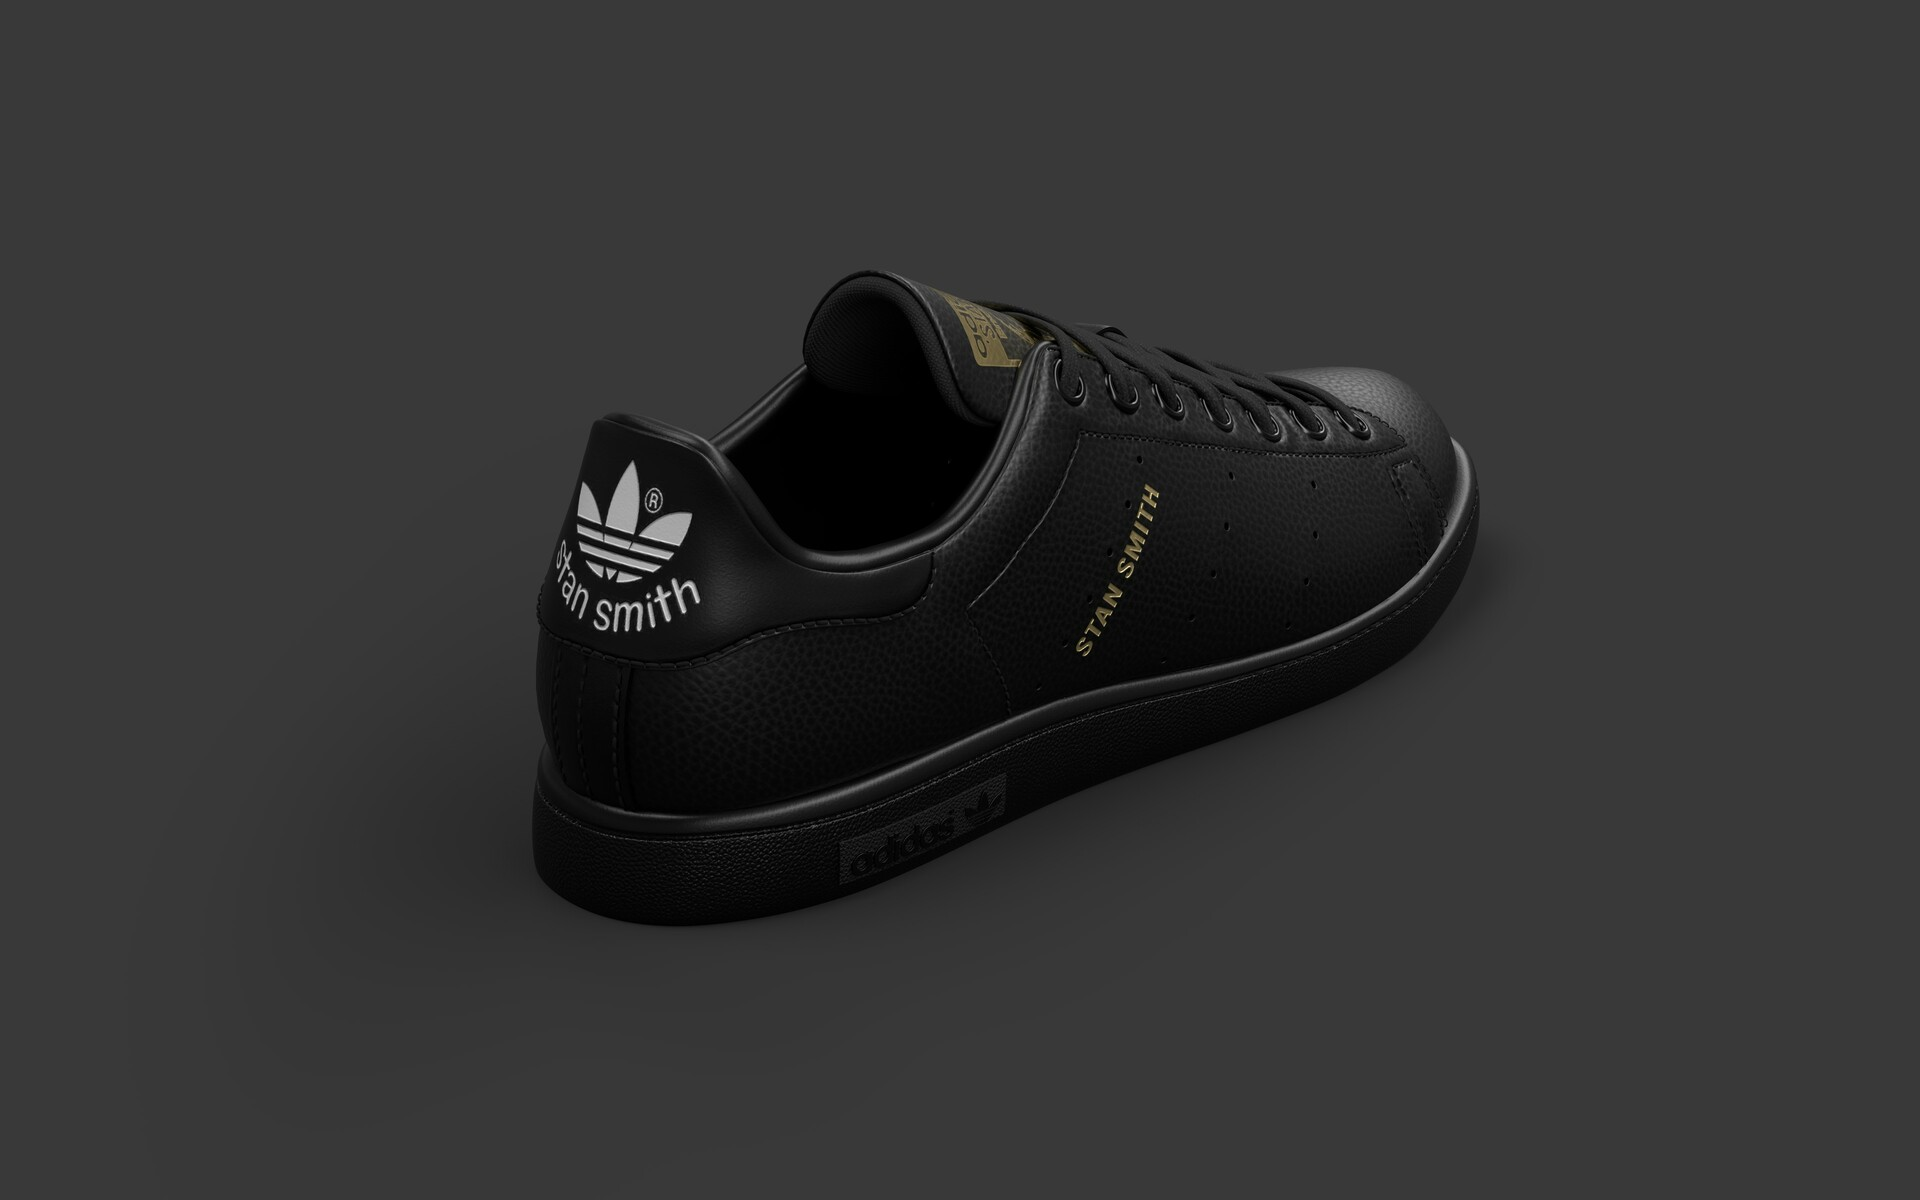 stan smith black limited edition